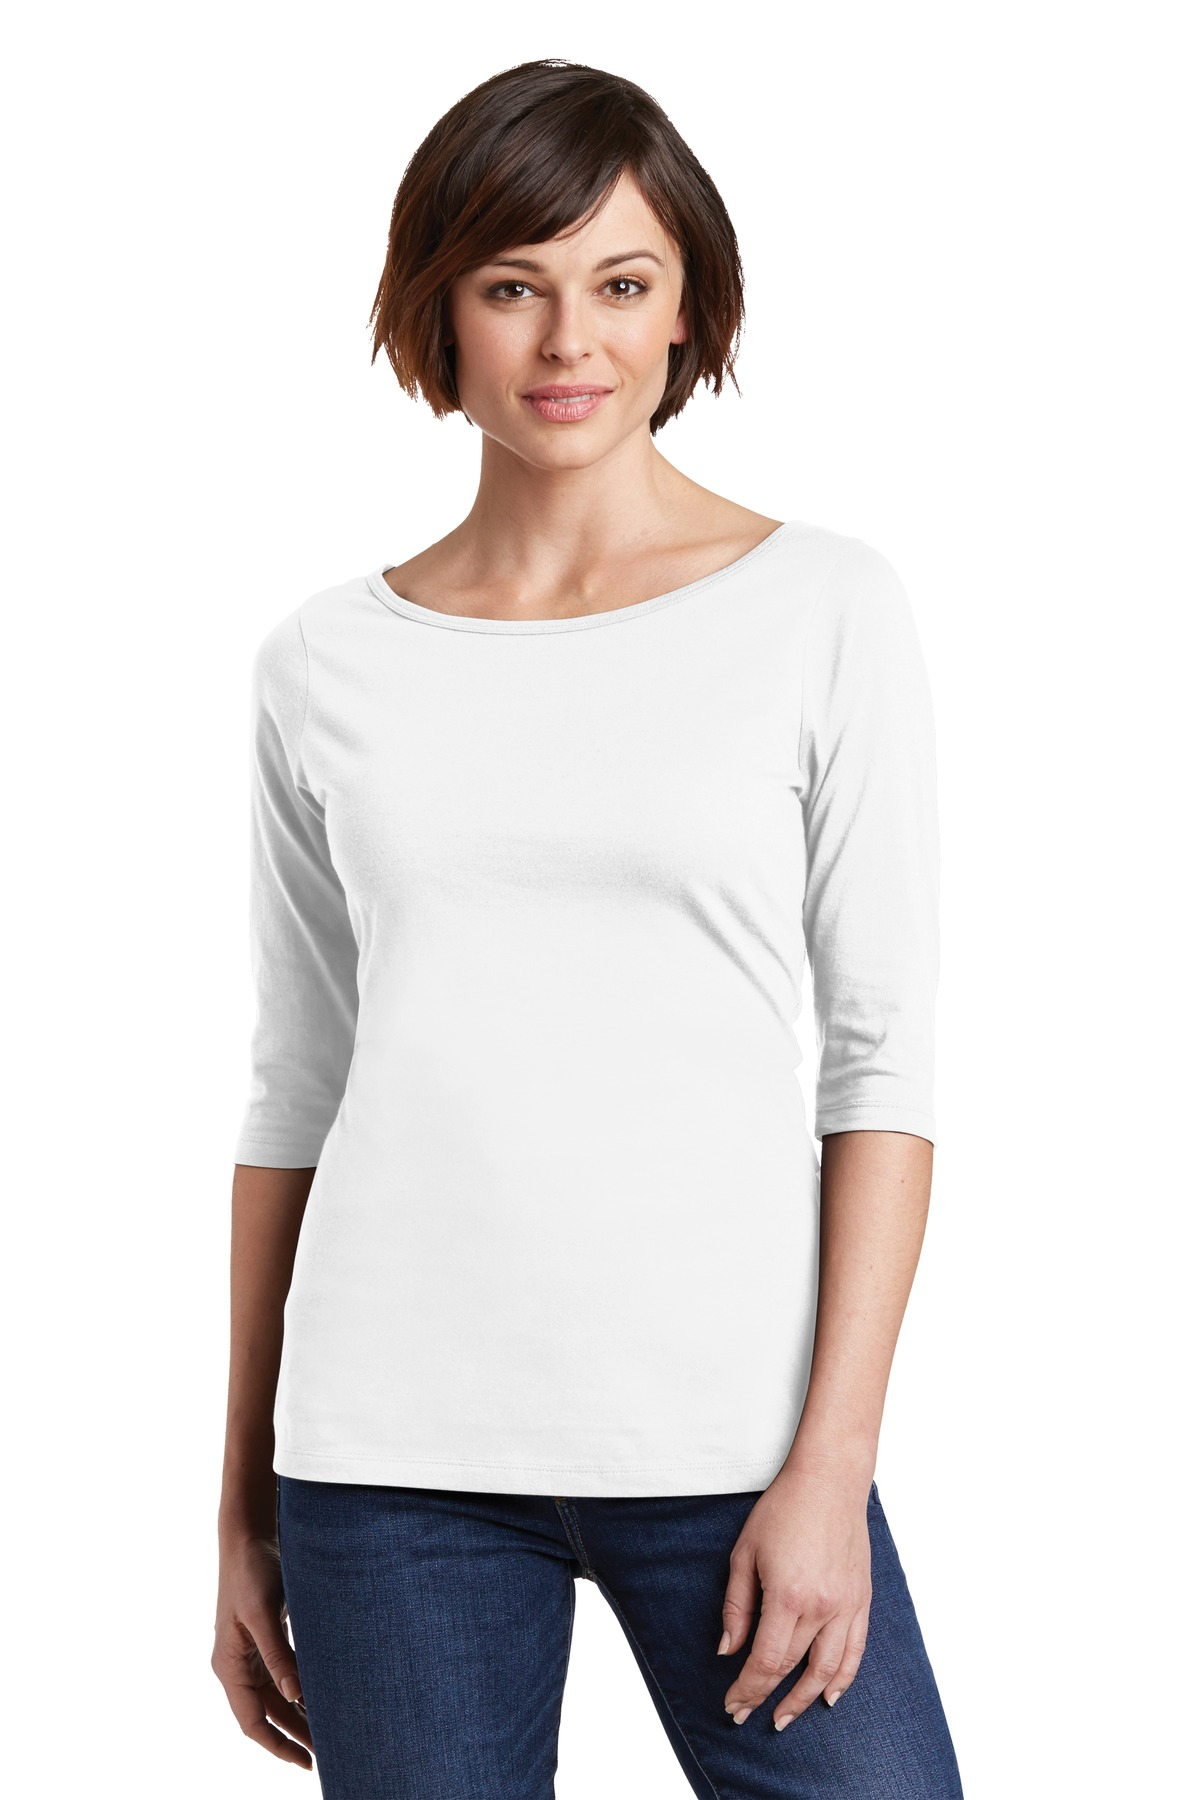 District Made Ladies 3/4-Sleeve Tee 100% Cotton Womens ...